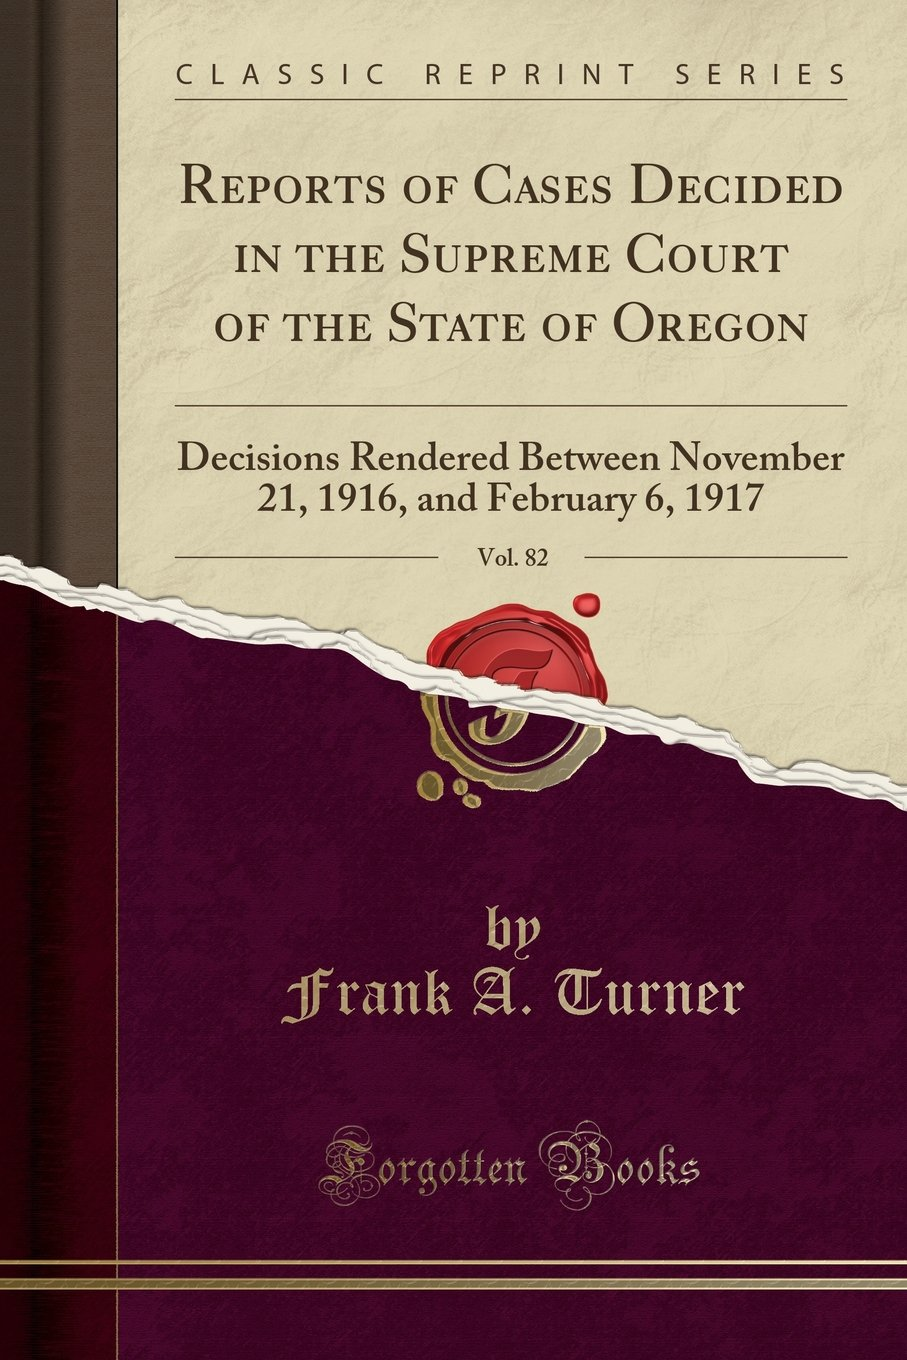 Download Reports of Cases Decided in the Supreme Court of the State of Oregon, Vol. 82: Decisions Rendered Between November 21, 1916, and February 6, 1917 (Classic Reprint) pdf epub